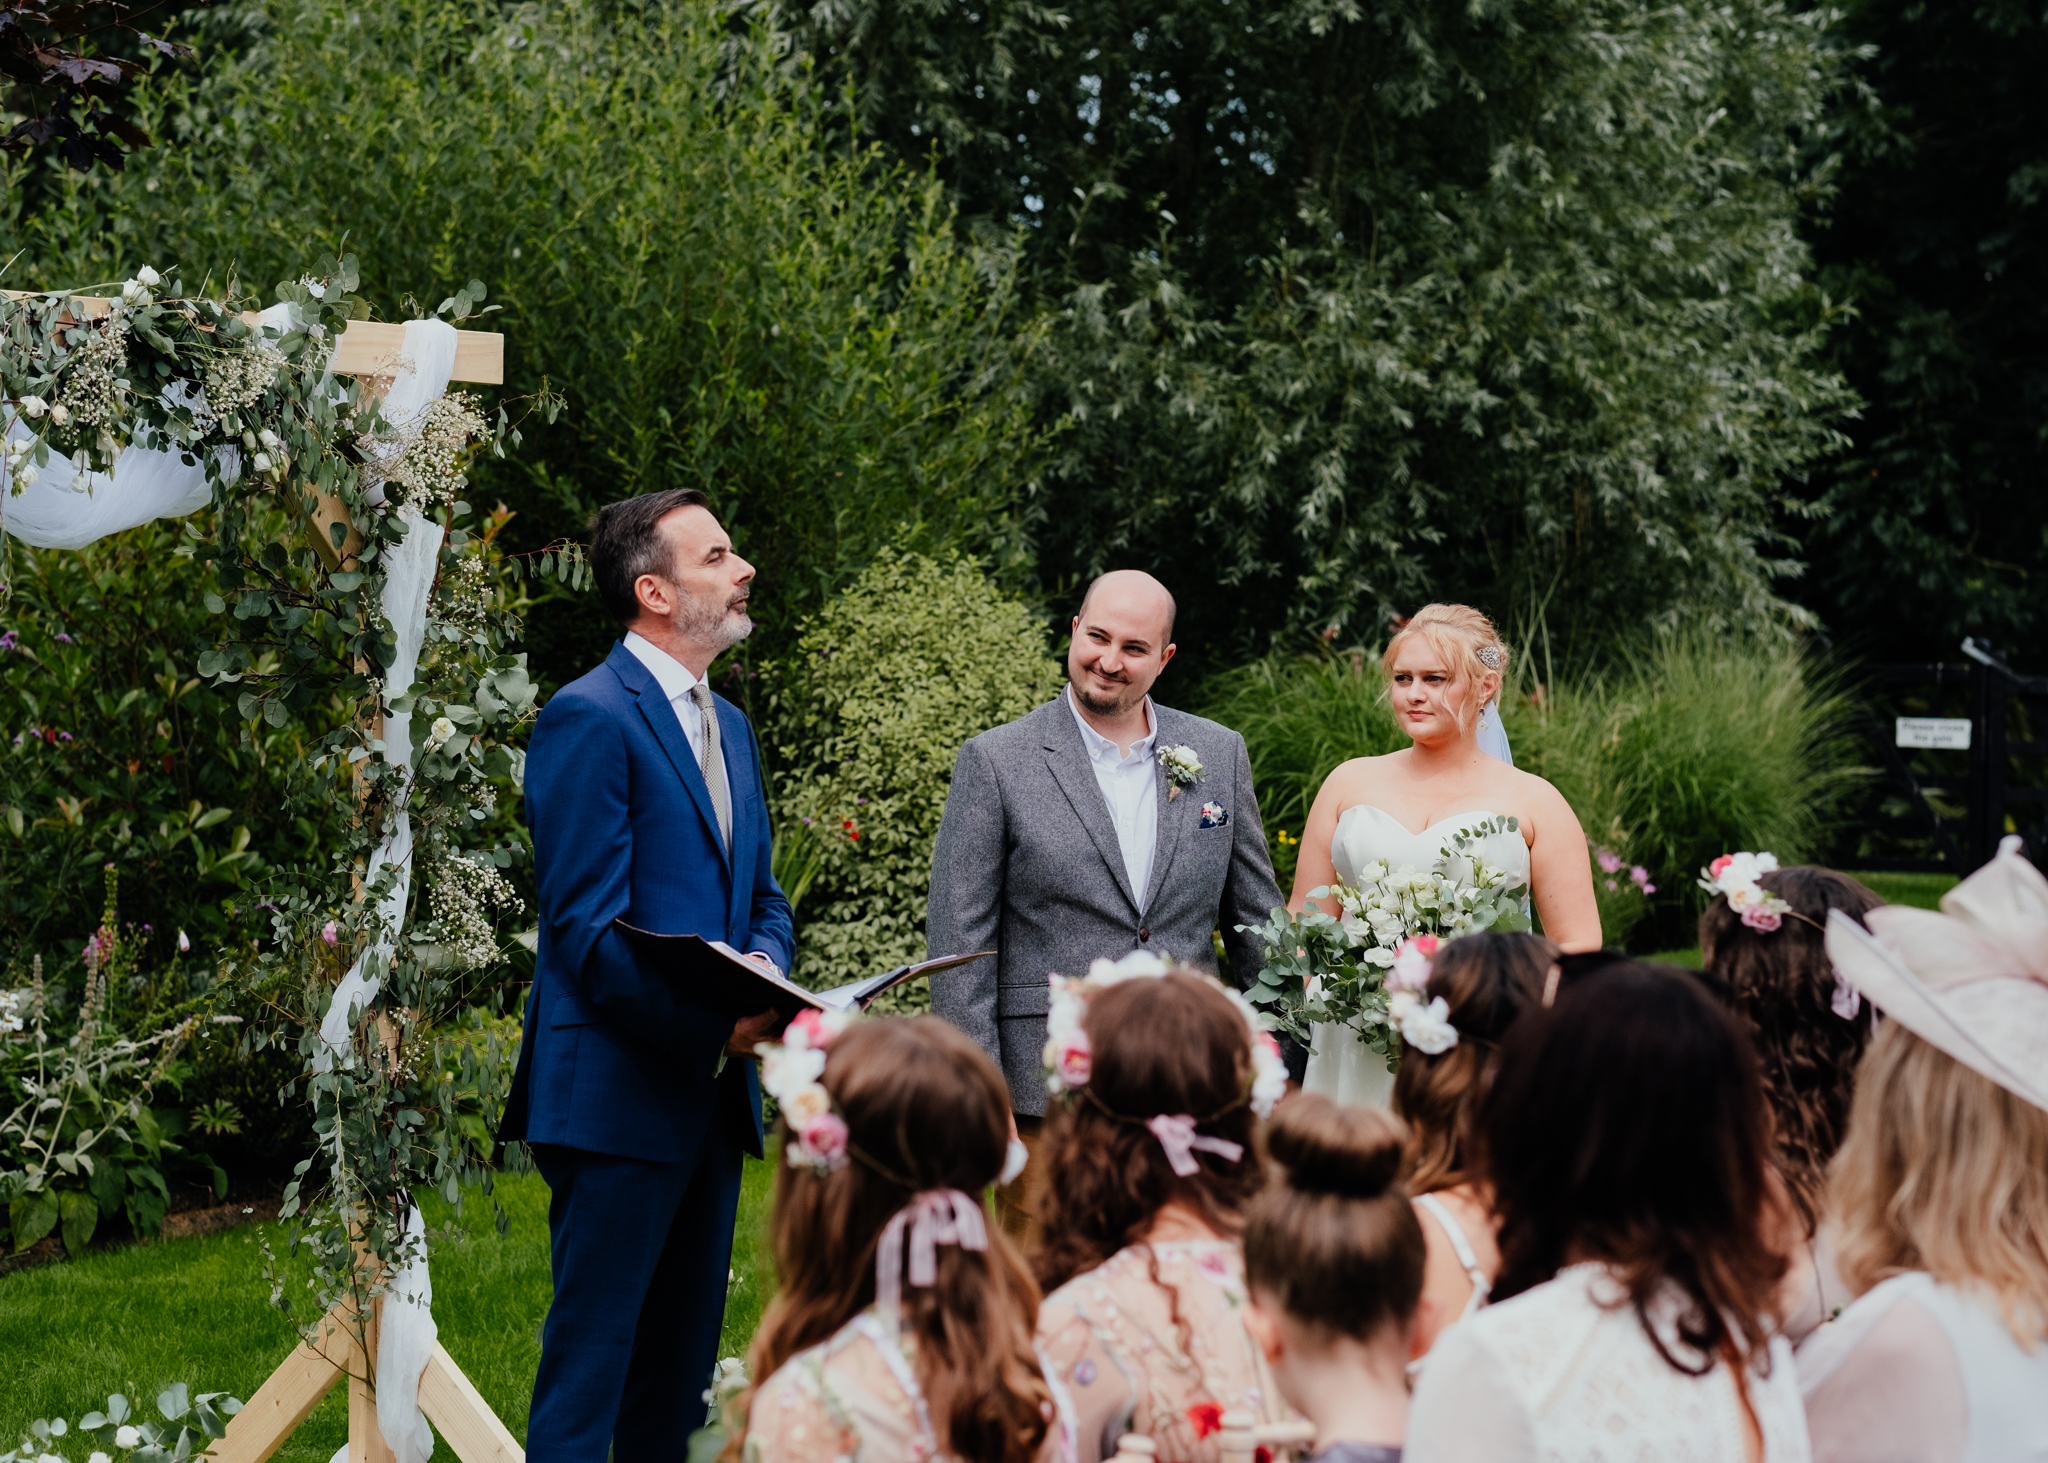 Groom smiles at celebrant during outdoor wedding at Rumbolds Farm